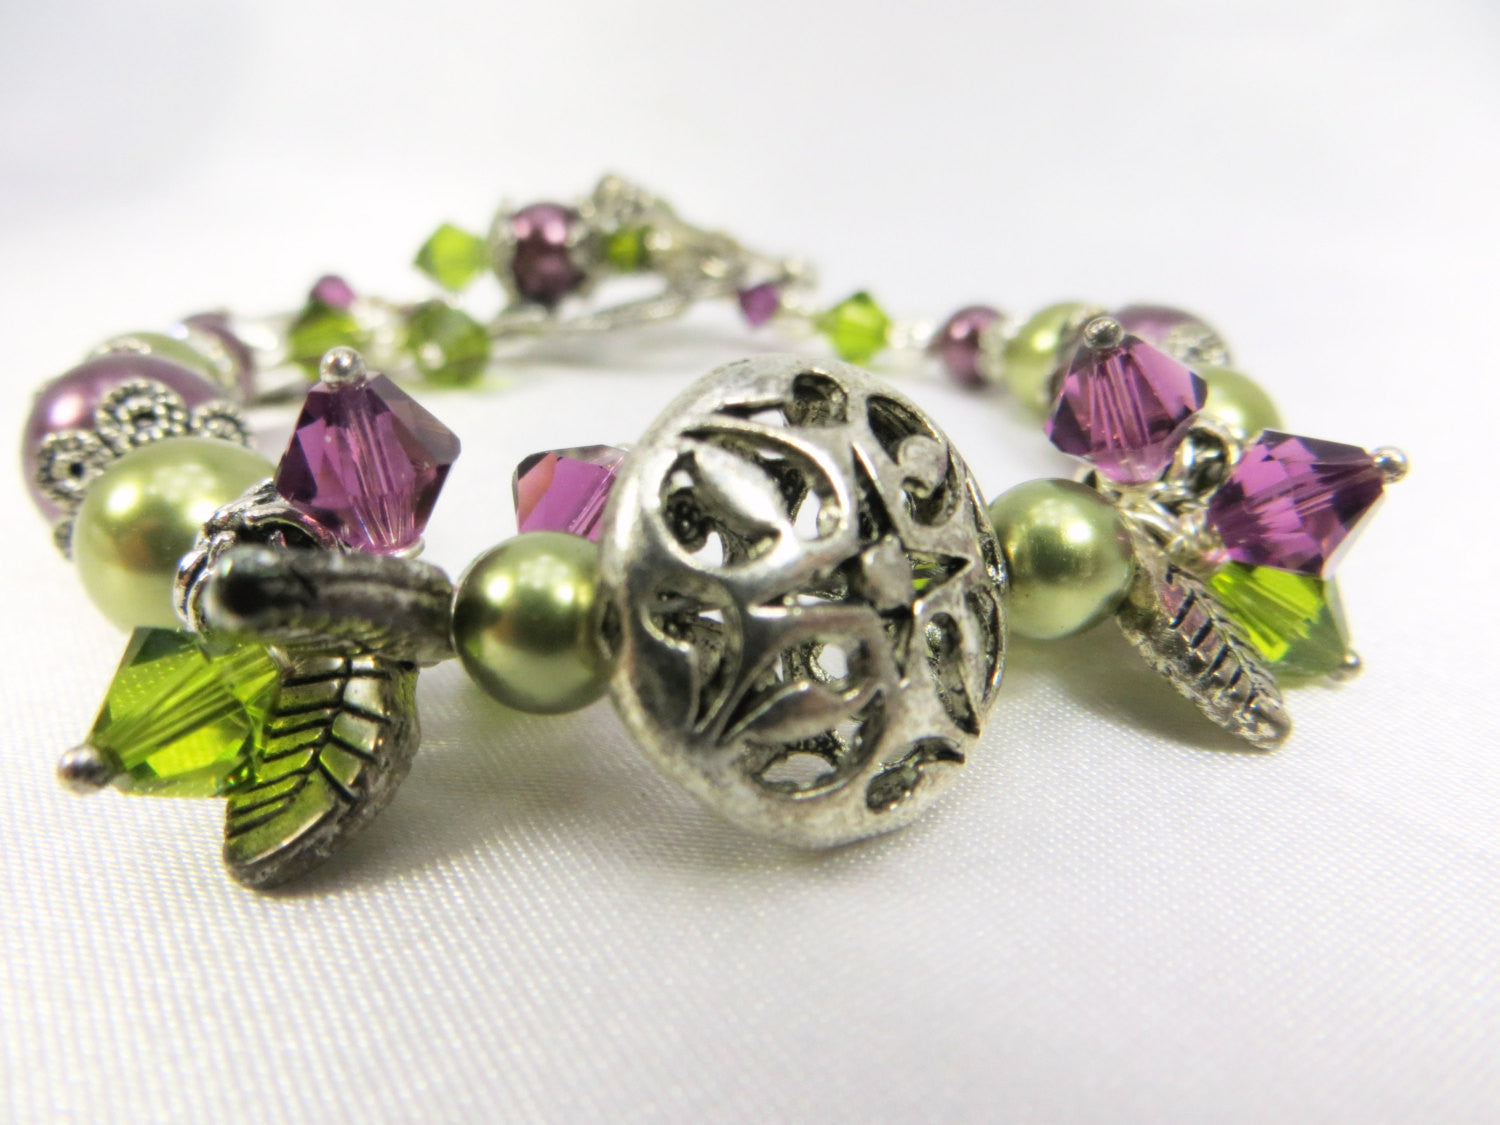 Swarovski Green Crystals and and Burgundy Purple Pearls ornate Bracelet with charms - Odyssey Creations